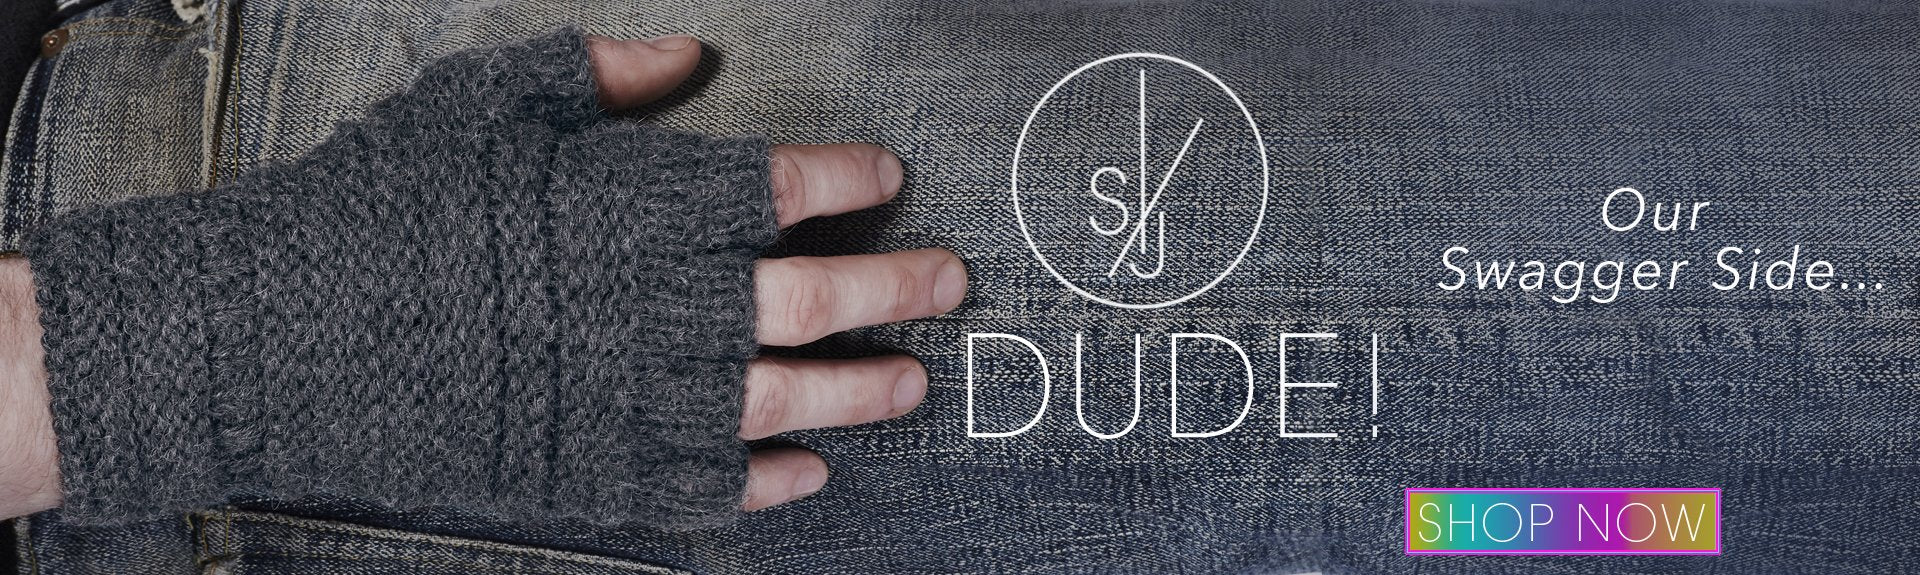 sustainable handmade luxury hats, gloves, scarf for men